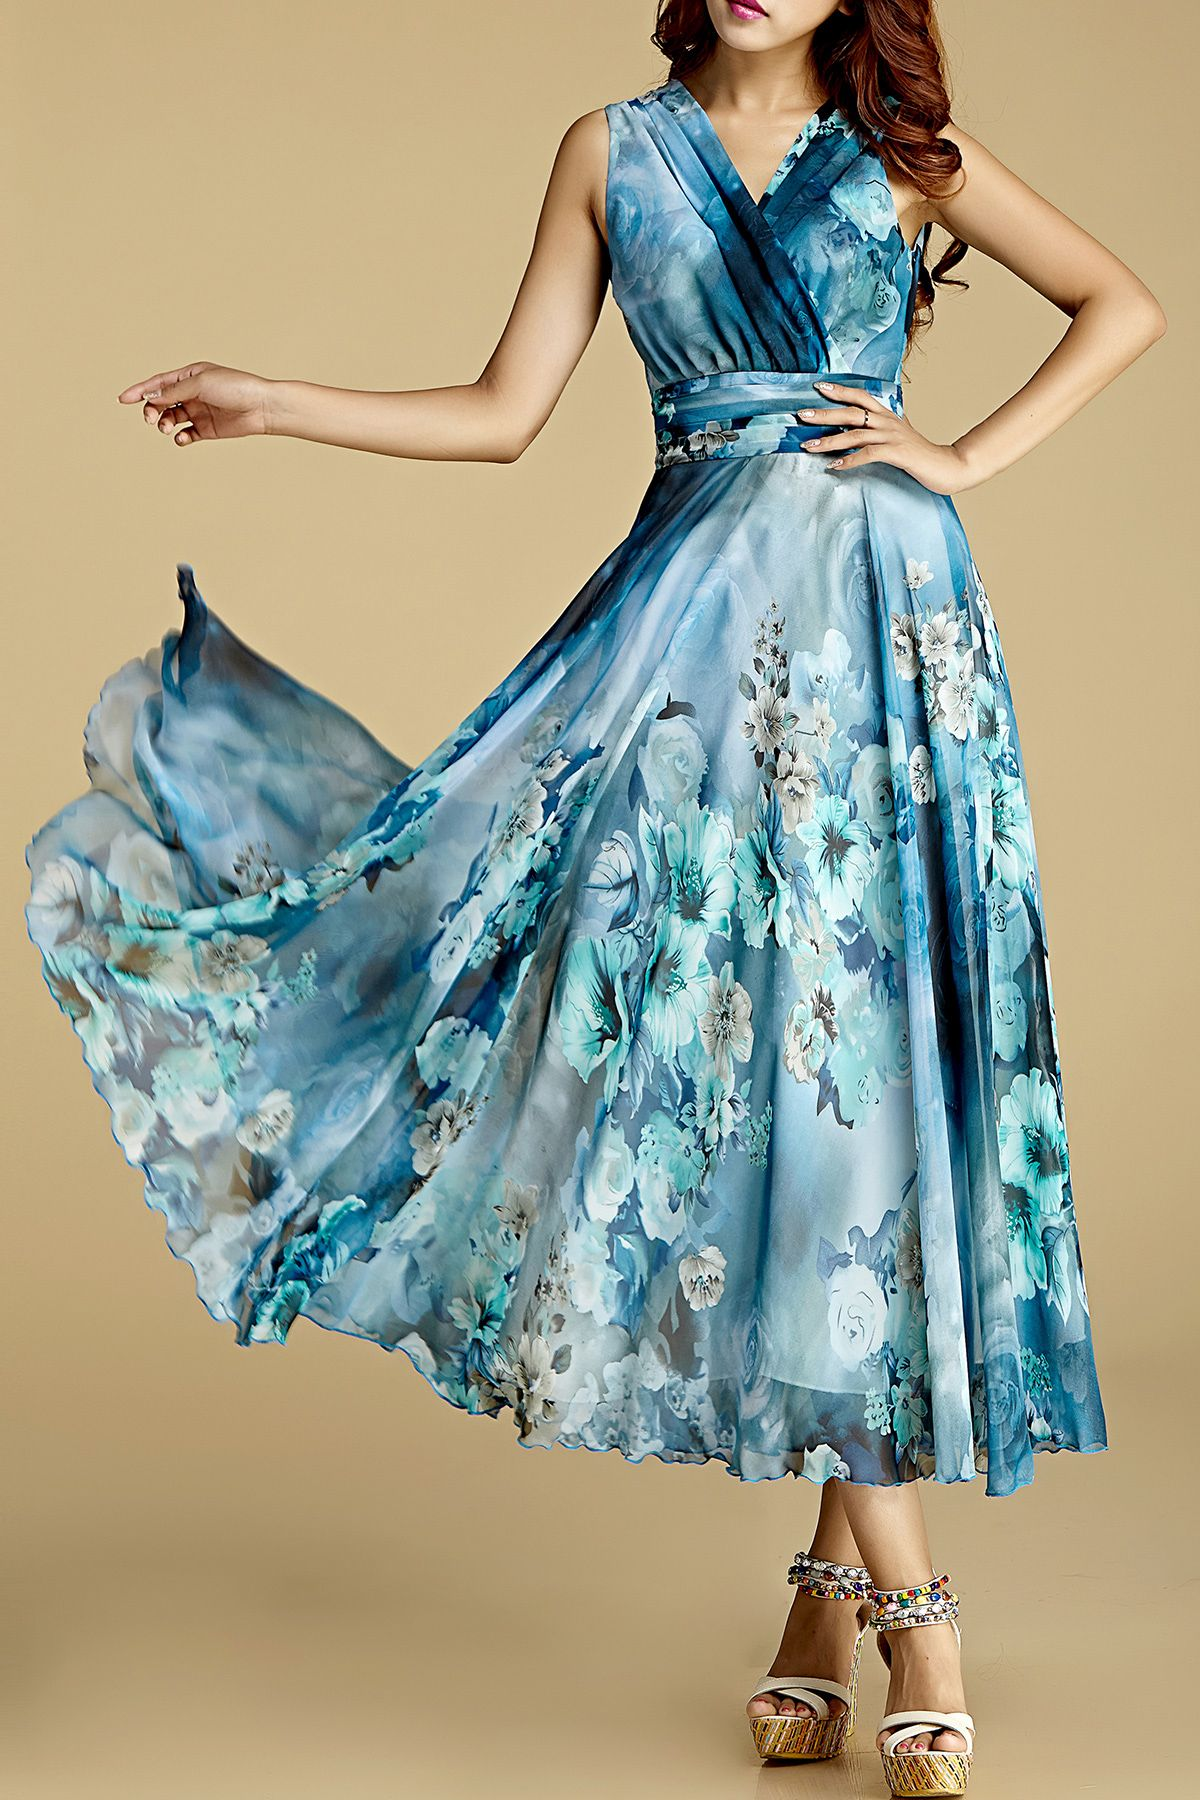 331677e6f96 Borme Water Blue Floral Print Crossed Chiffon Dress